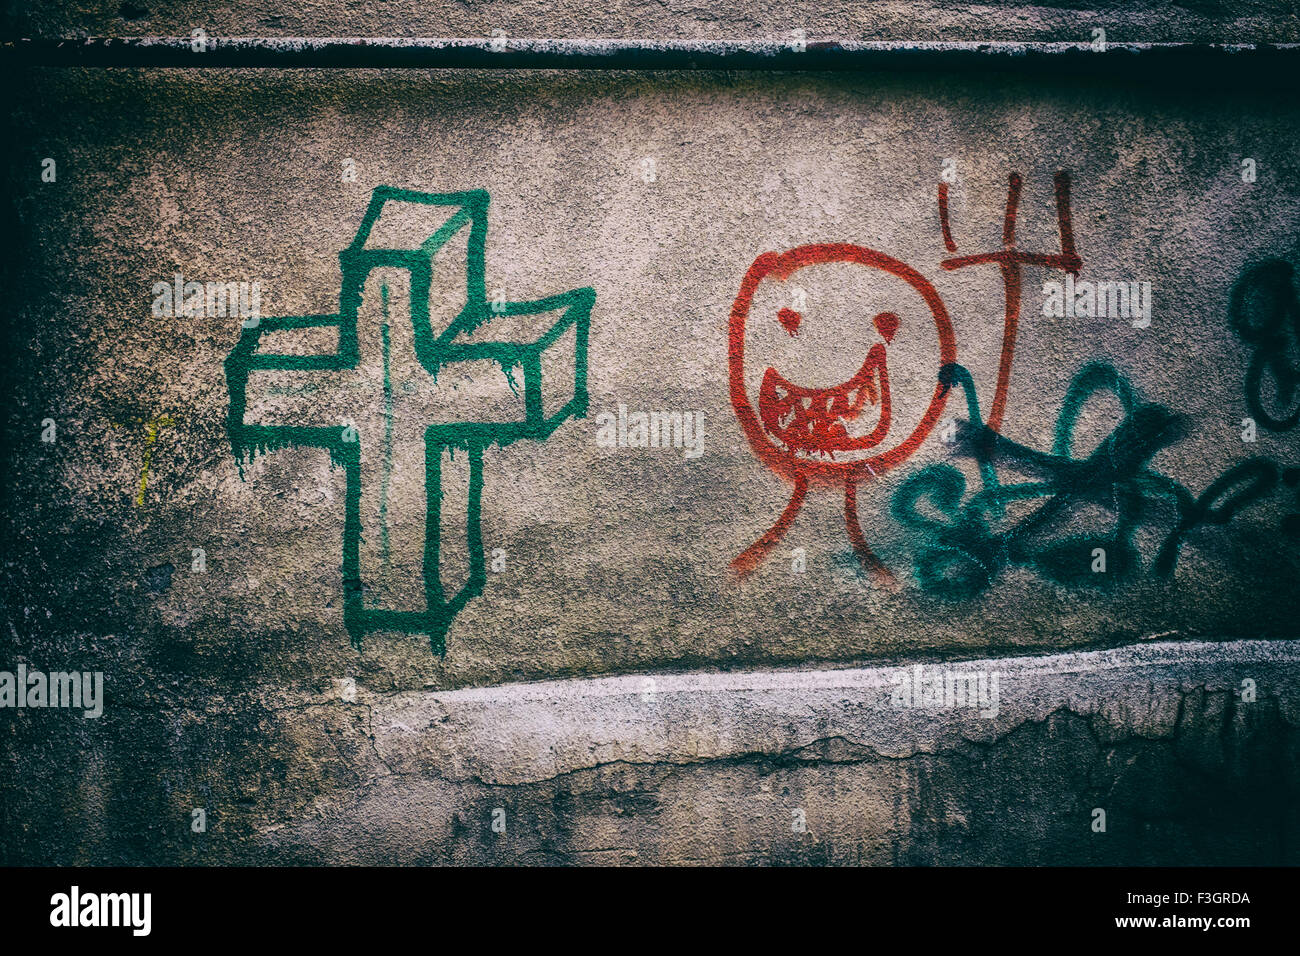 graffiti walls stockfotos graffiti walls bilder alamy. Black Bedroom Furniture Sets. Home Design Ideas